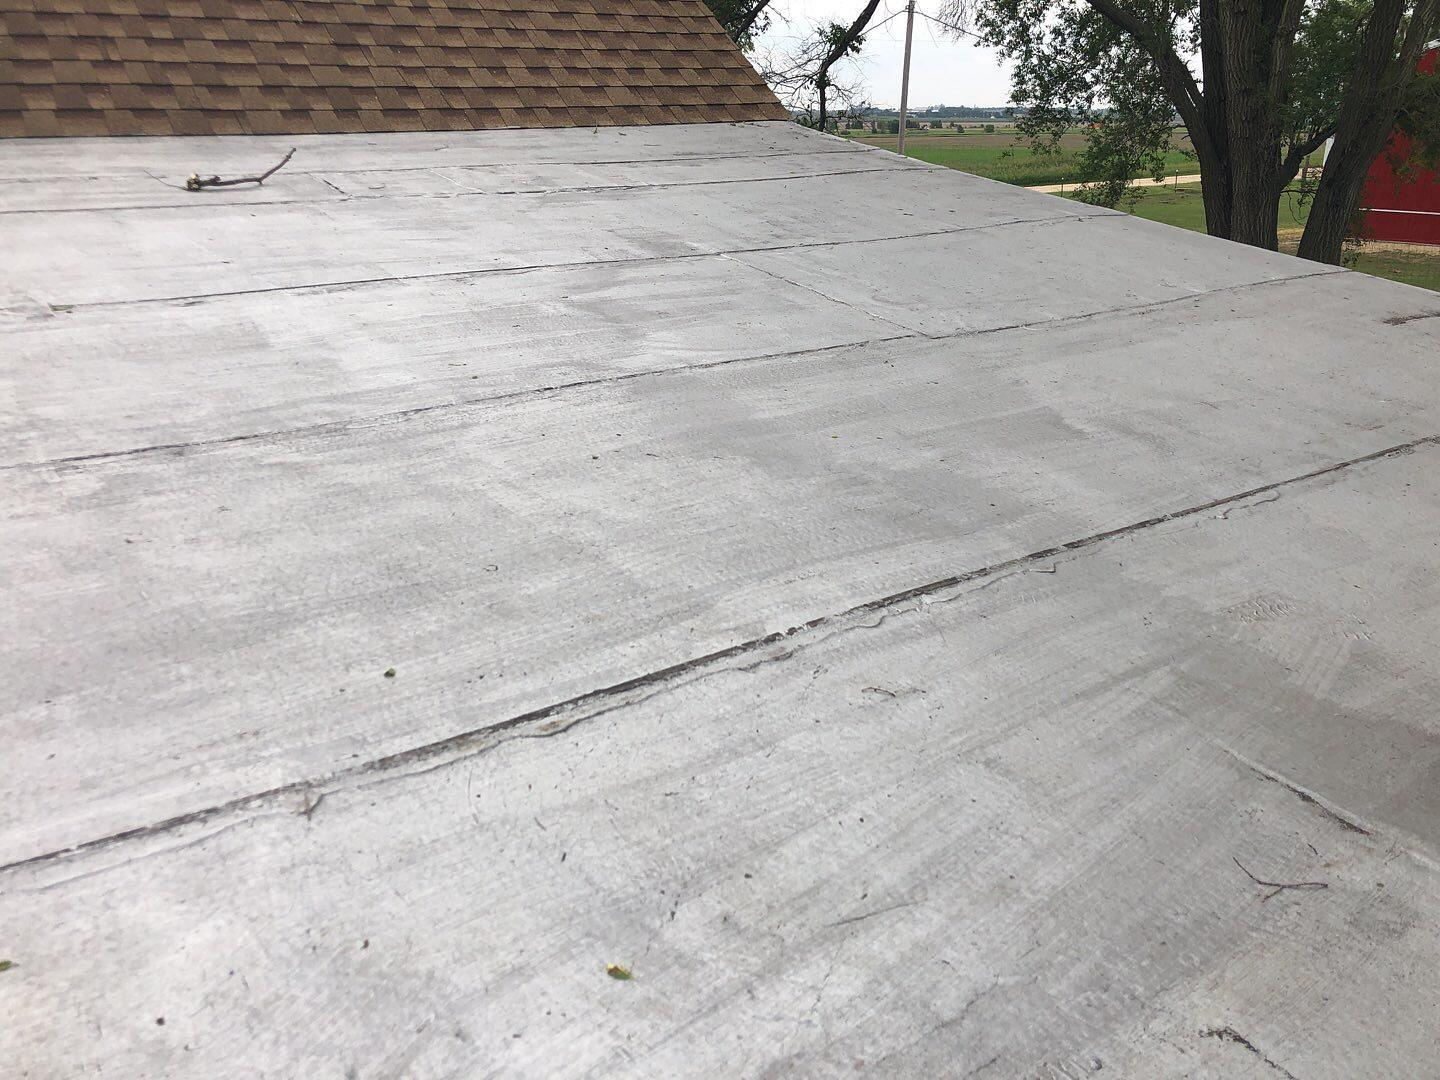 Residential Flat Roof Replacement in Rochelle, IL - Before Photo